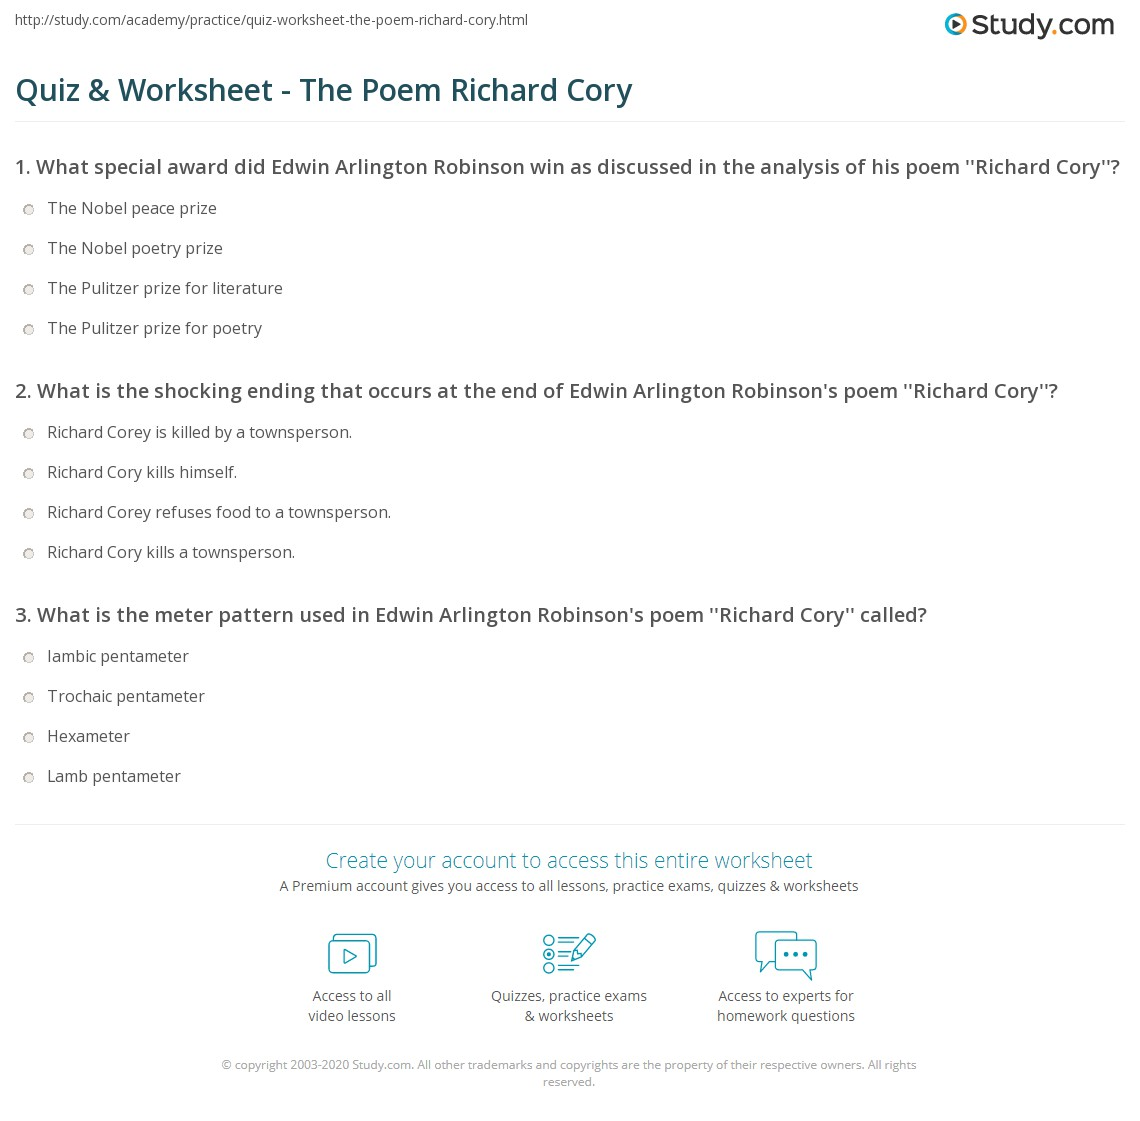 quiz worksheet the poem richard cory com print the poem richard cory analysis theme meaning worksheet